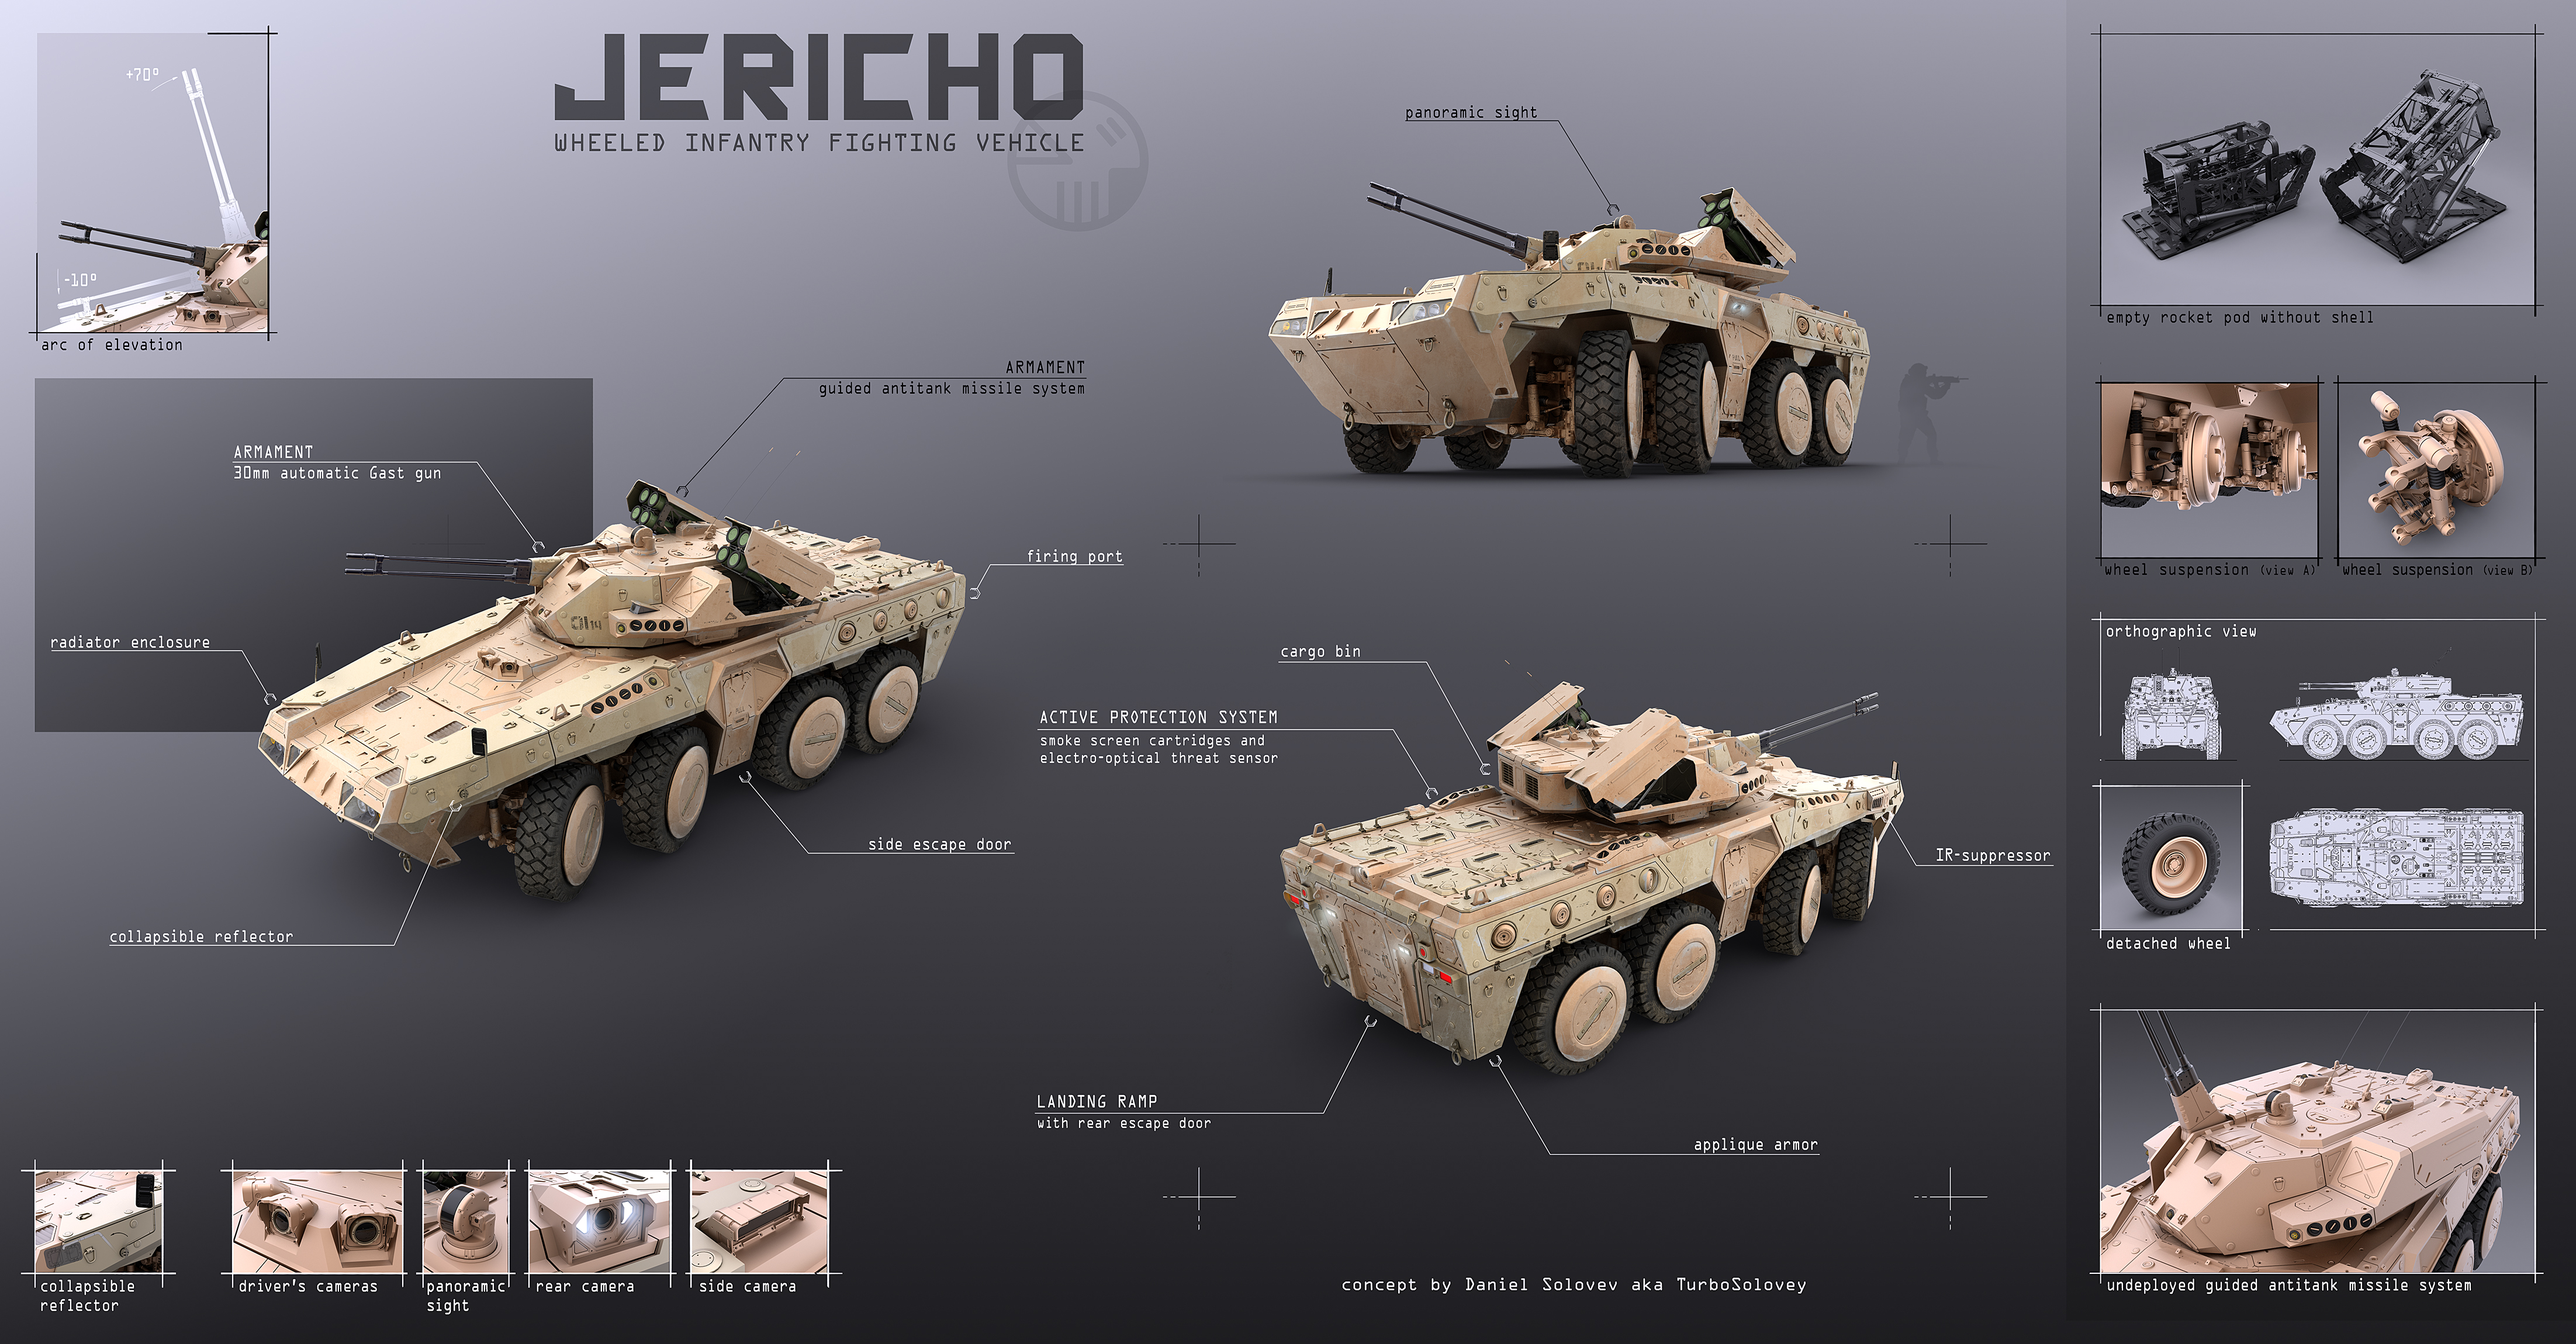 Ifv 39 jericho 39 by turbosolovey on deviantart - Fantastic modern architecture in futuristic design with owner passion ...